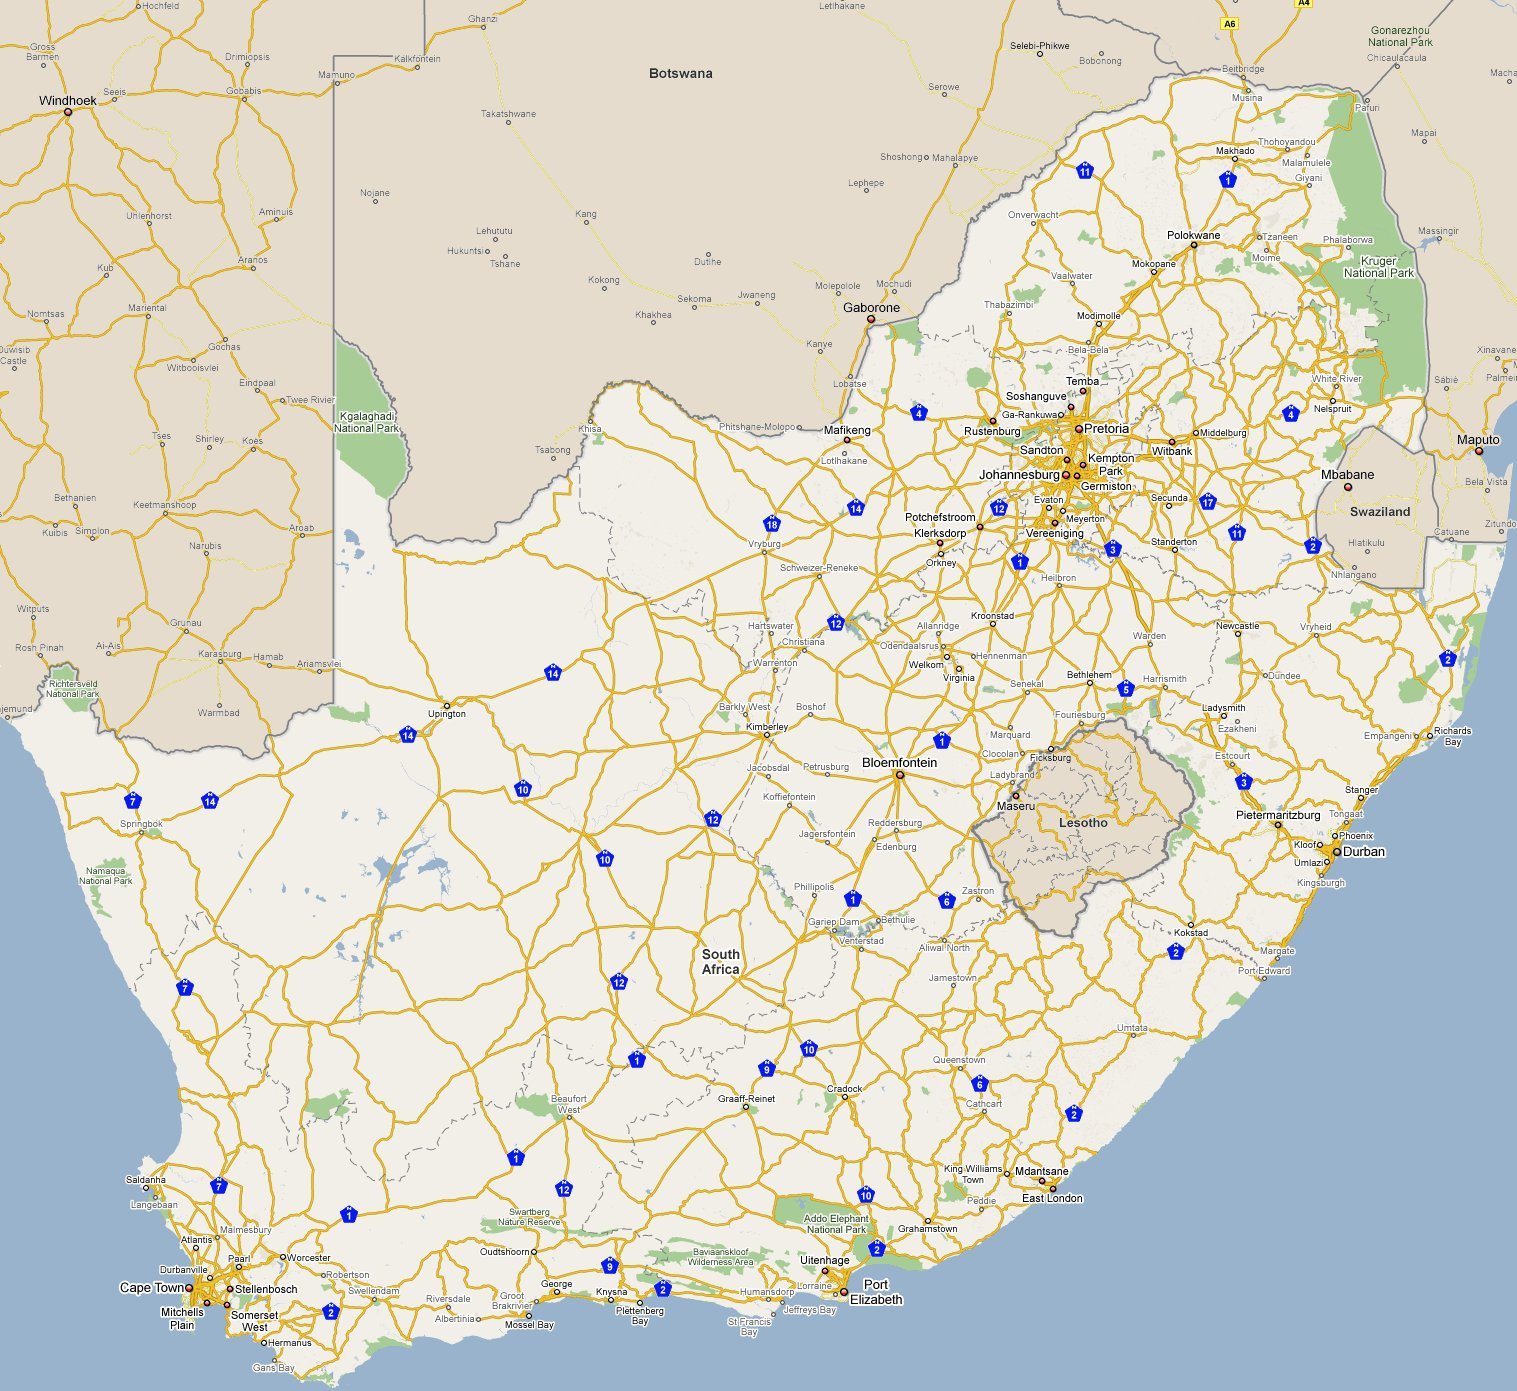 Street maps south africa cinemergente footiemap south africa 2010 2011 map of top tier south african football club stadiums gumiabroncs Images